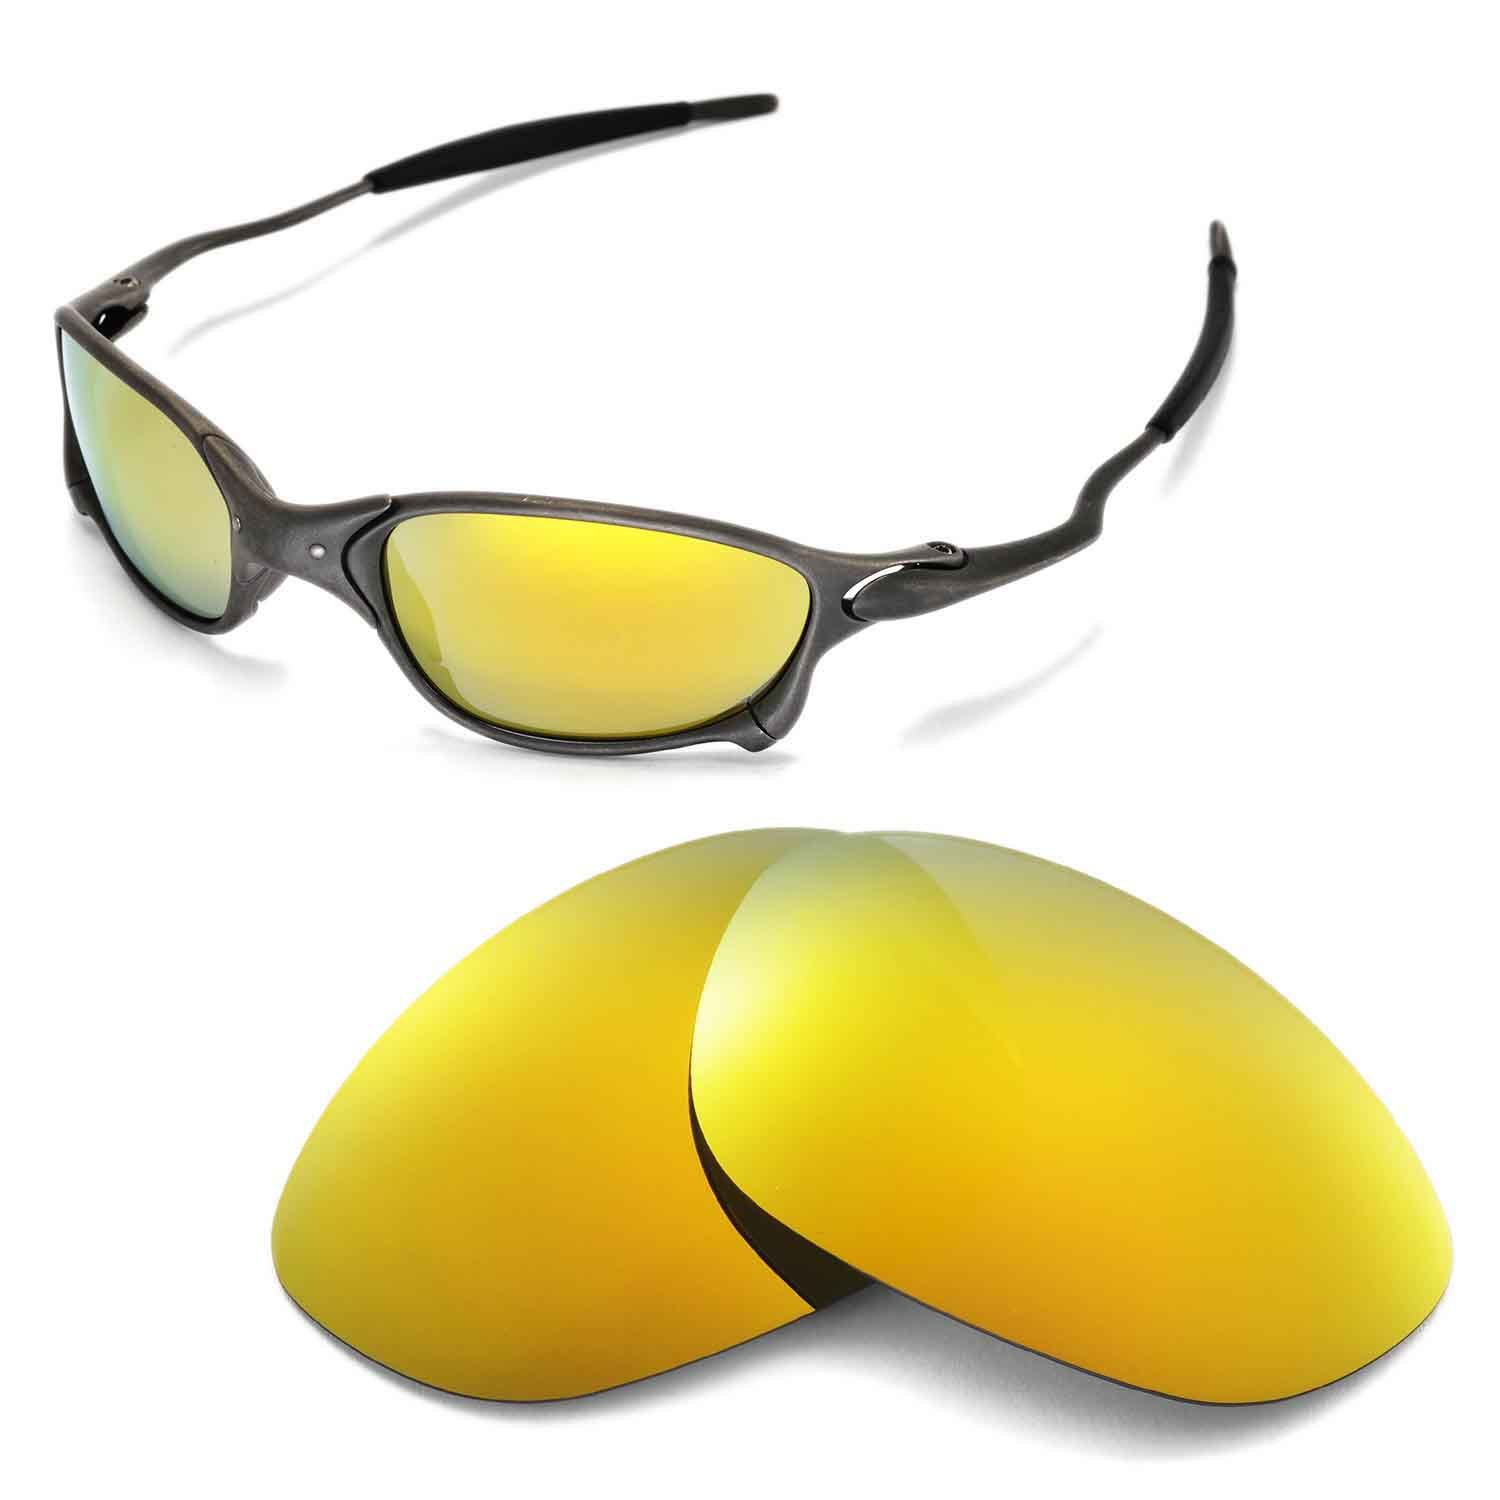 Walleva Replacement Lenses for Oakley X Metal XX Sunglasses - Multiple  Options (24K Gold Mirror Coated - Polarized)  Amazon.co.uk  Clothing 1ba3a3bb49